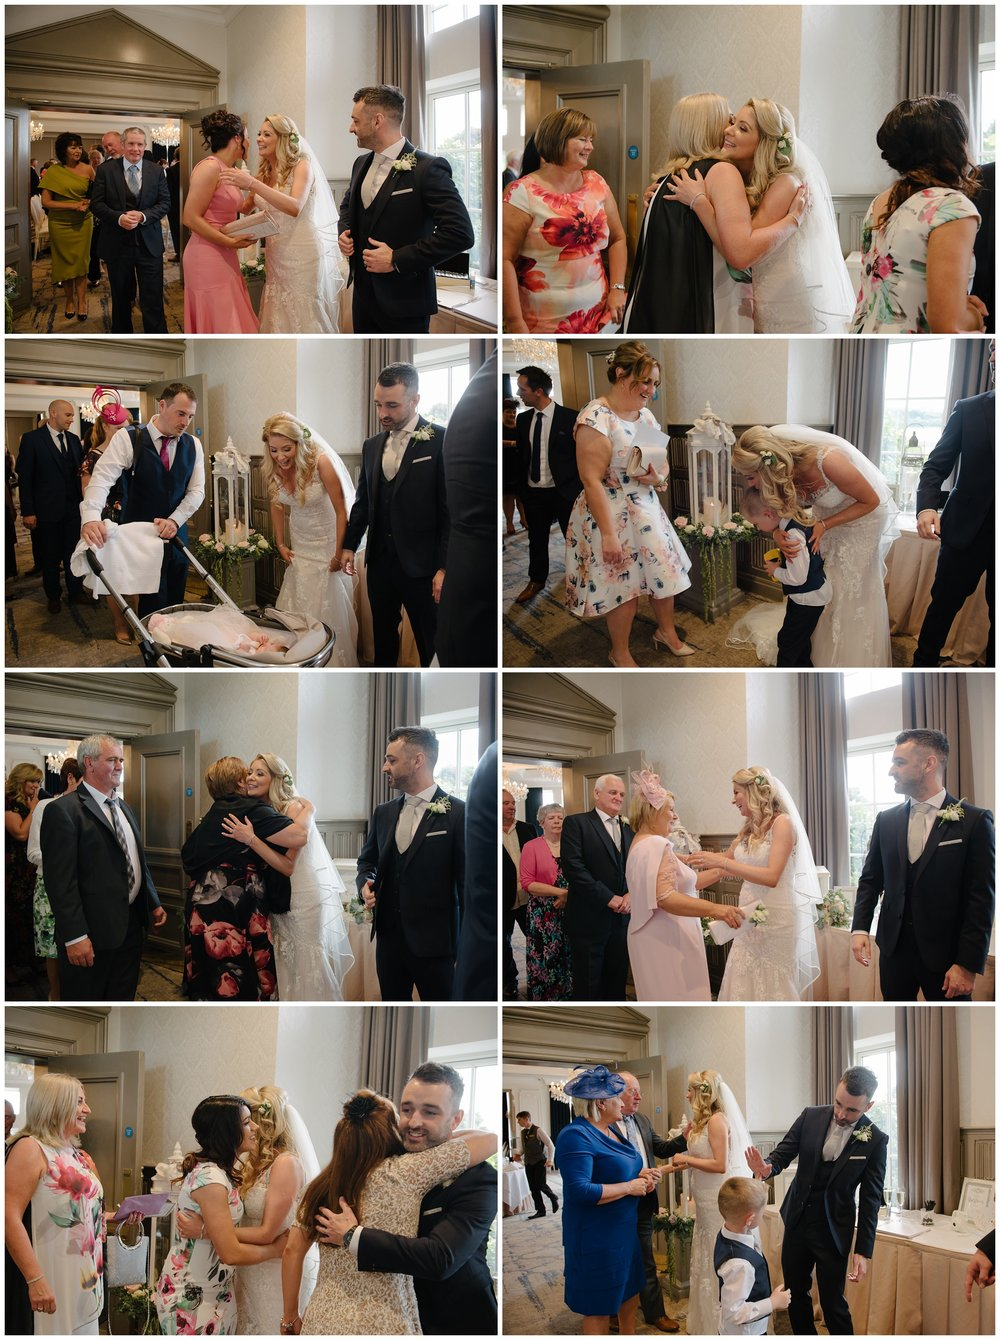 louise_keith_lough_erne_wedding_jude_browne_photography_0038.jpg